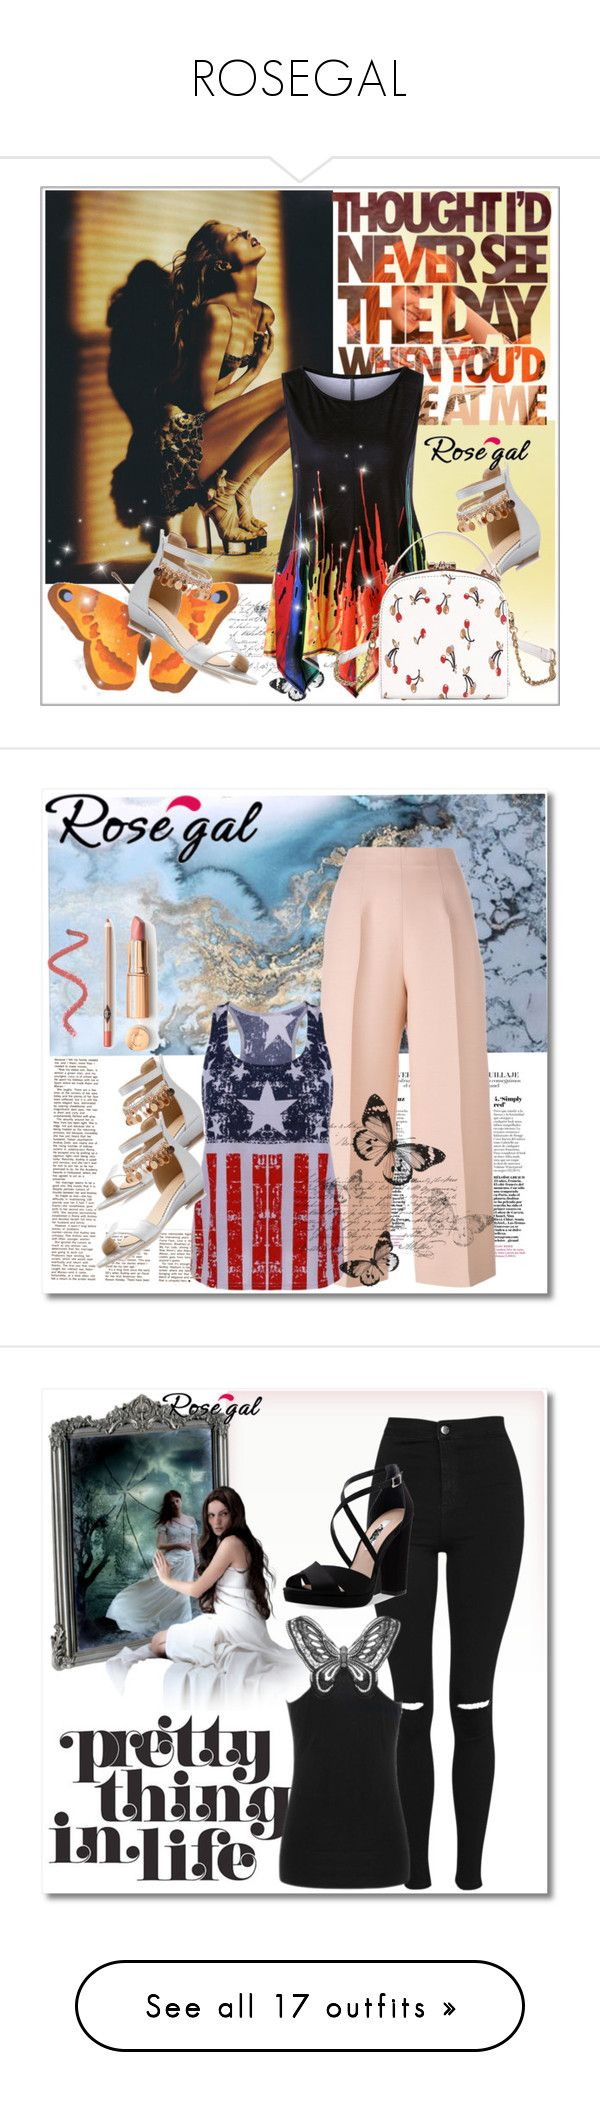 """ROSEGAL"" by selma3355 ❤ liked on Polyvore featuring Fendi, Topshop, Nina, Uniqlo, men's fashion, menswear, Prada, FRIDA, Beach Bunny and Lipstick Queen"